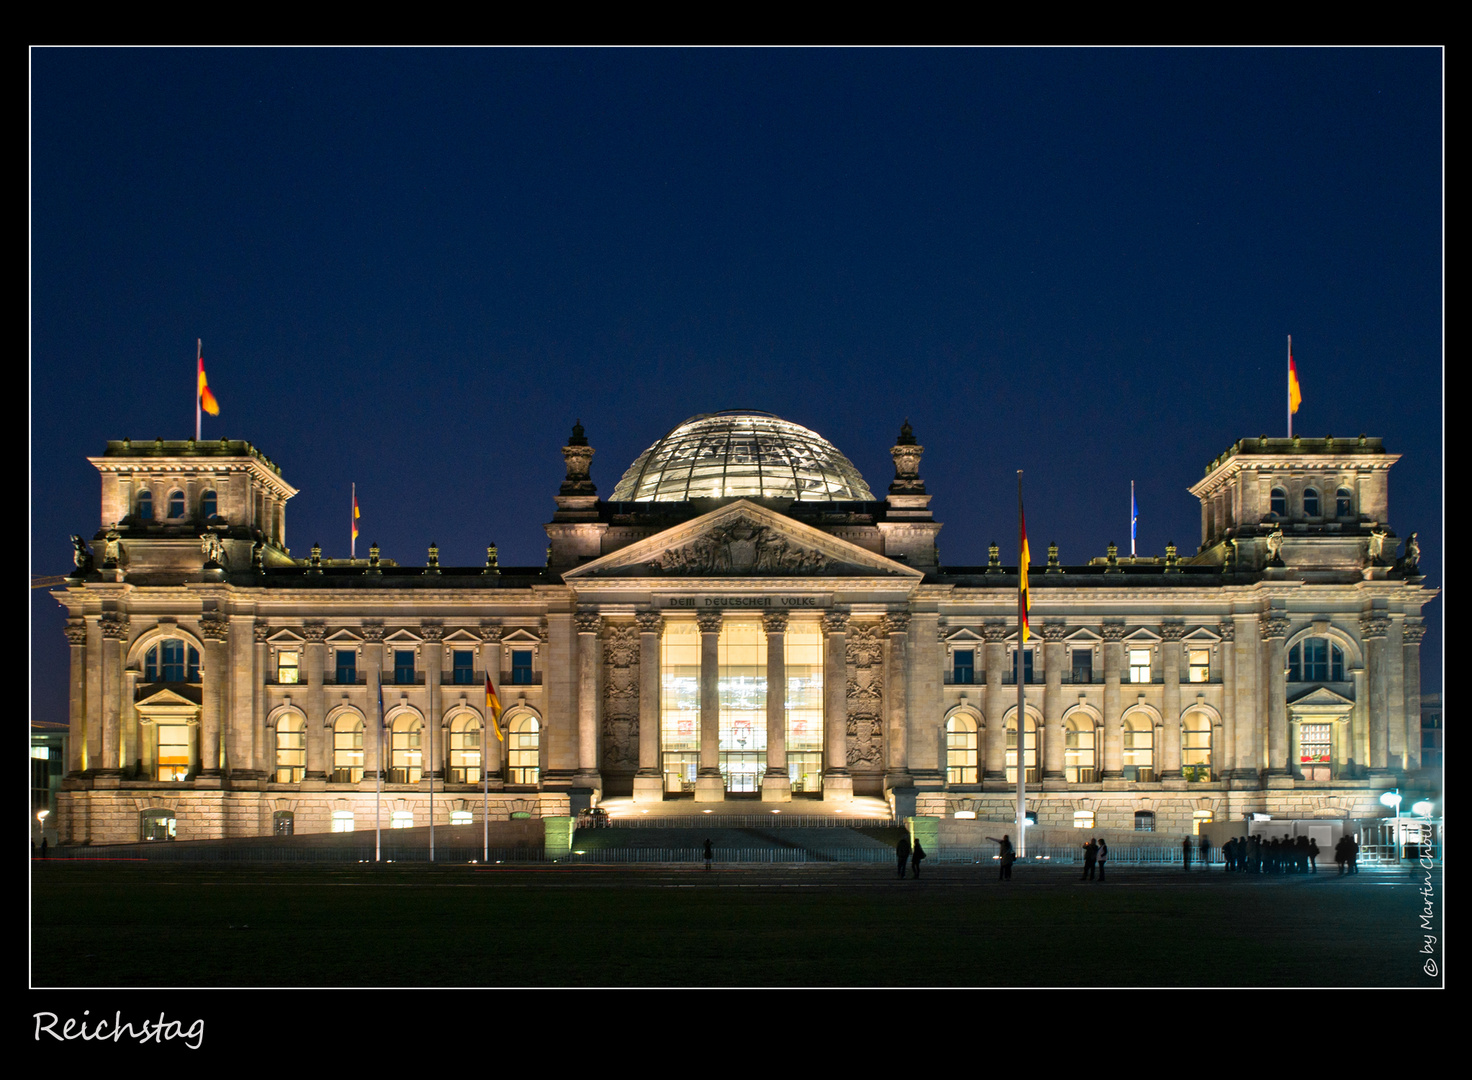 Reichstag by Night